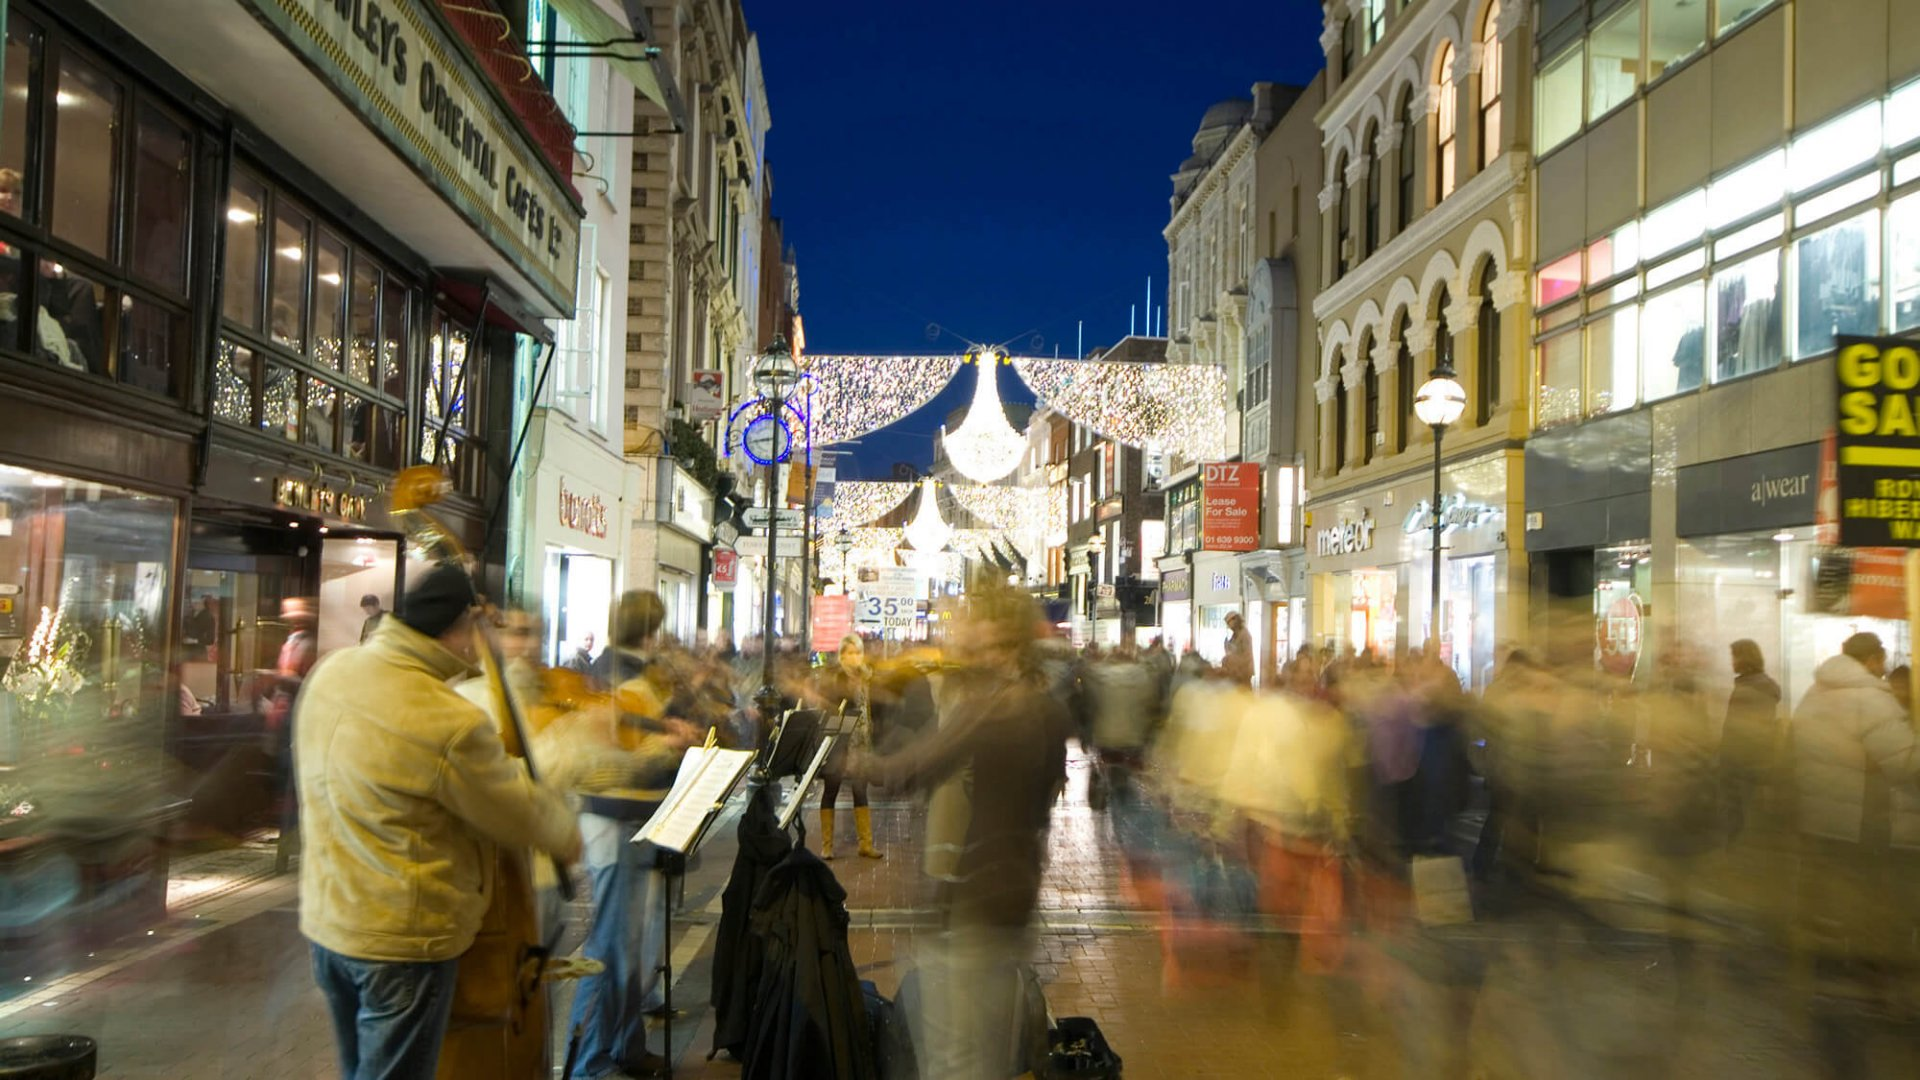 Hustle and bustle on Grafton Street at night including buskers